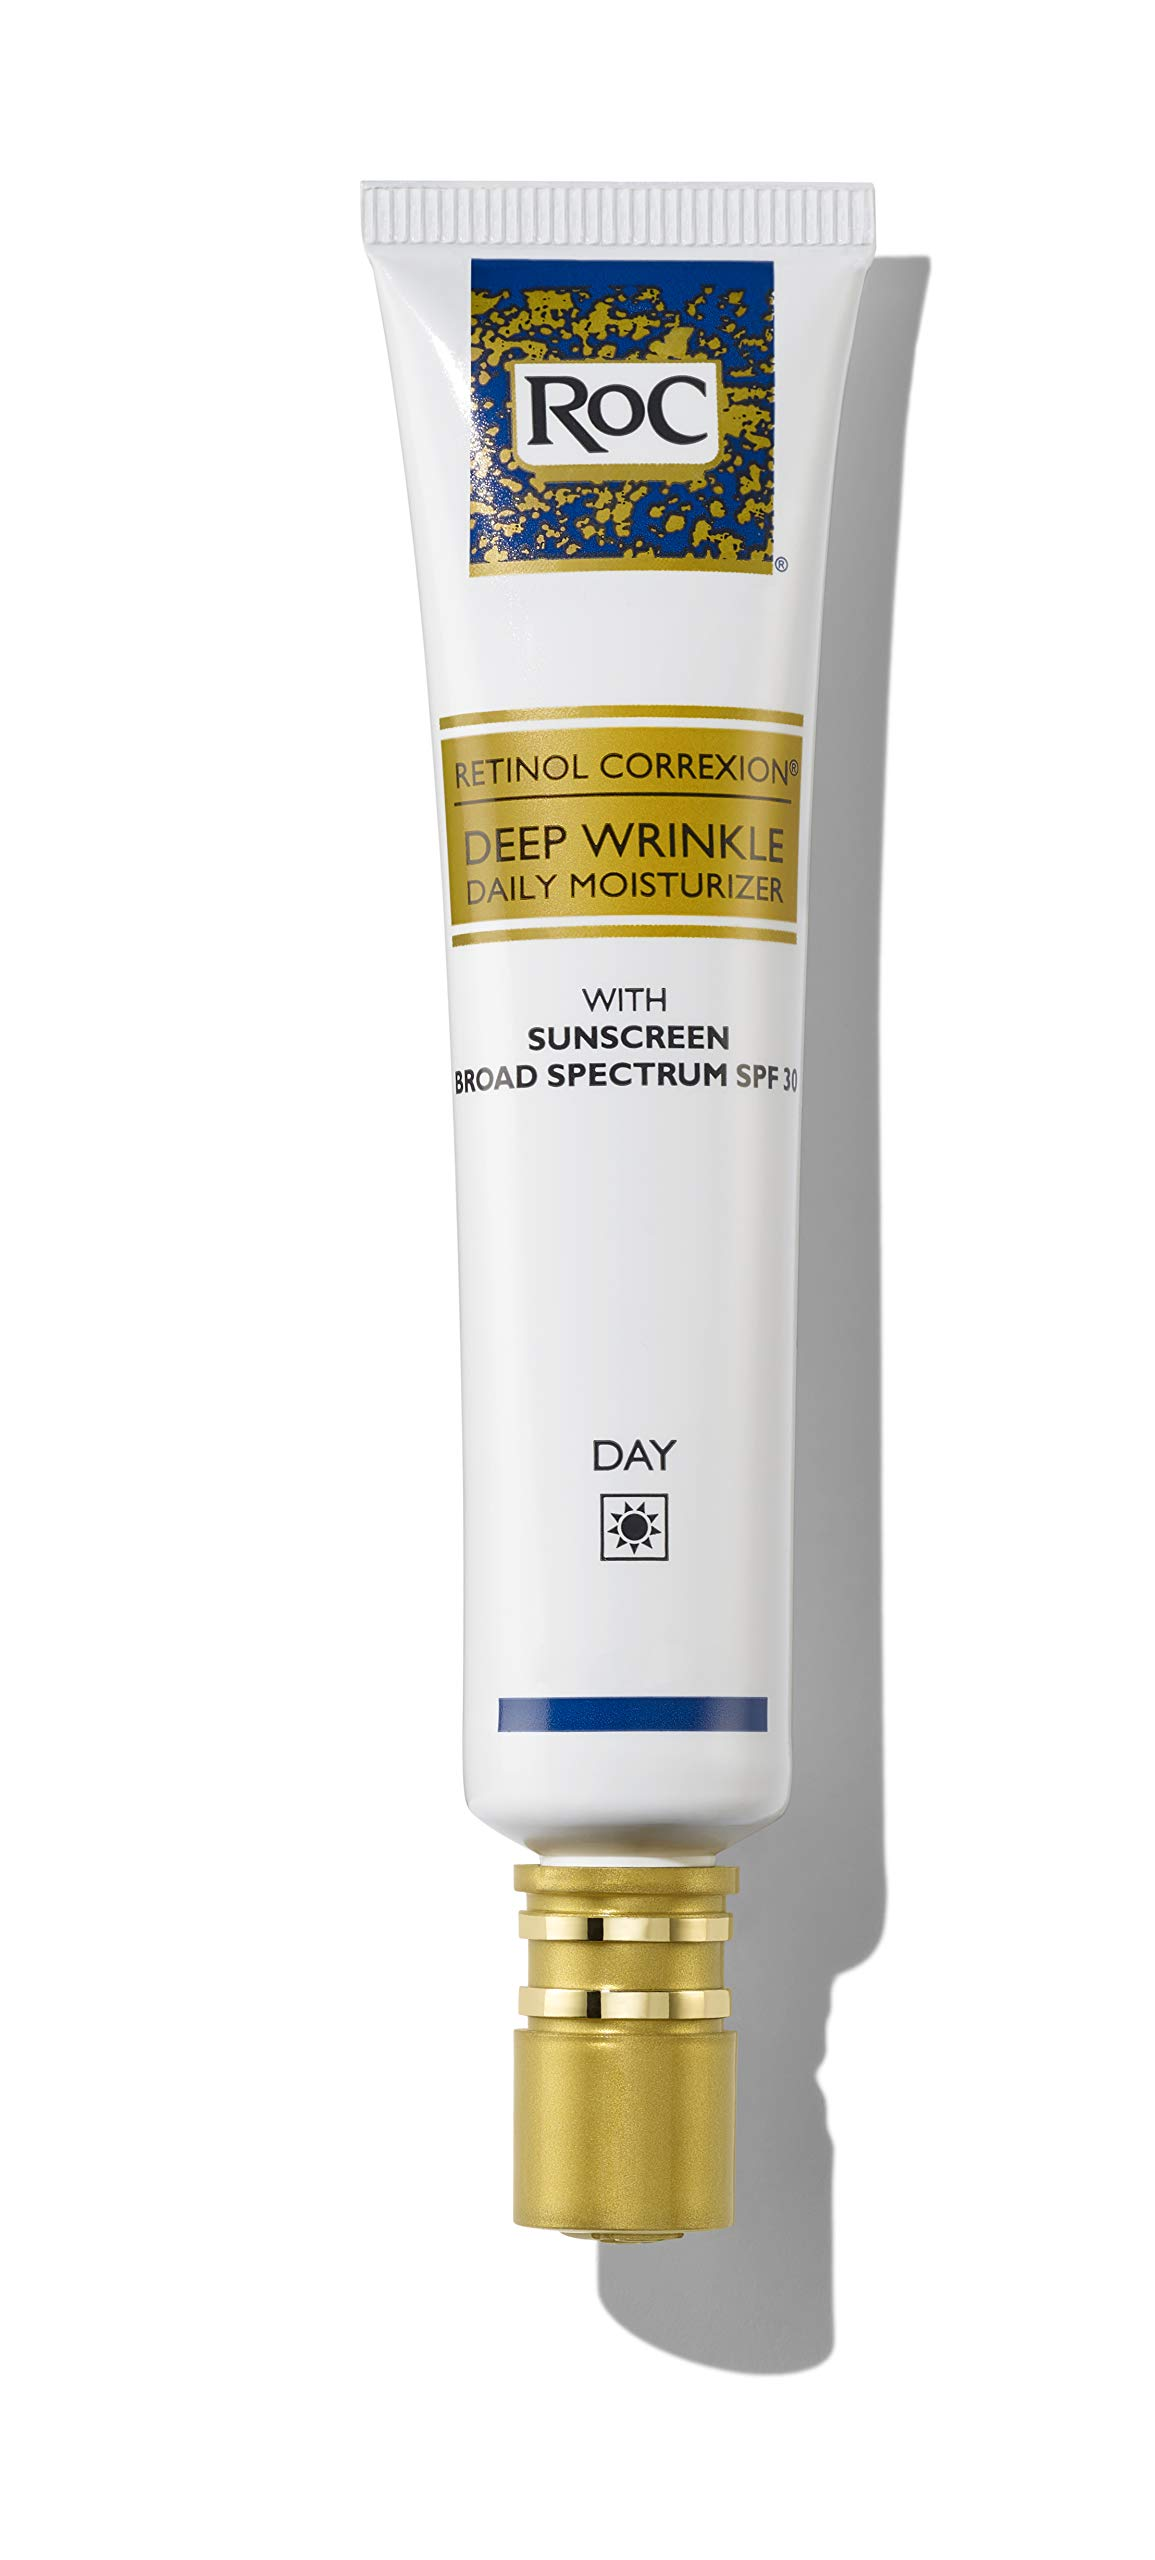 RoC Retinol Correxion Deep Wrinkle Daily Moisturizer with SPF 30 and Vitamin E, 1 Ounce